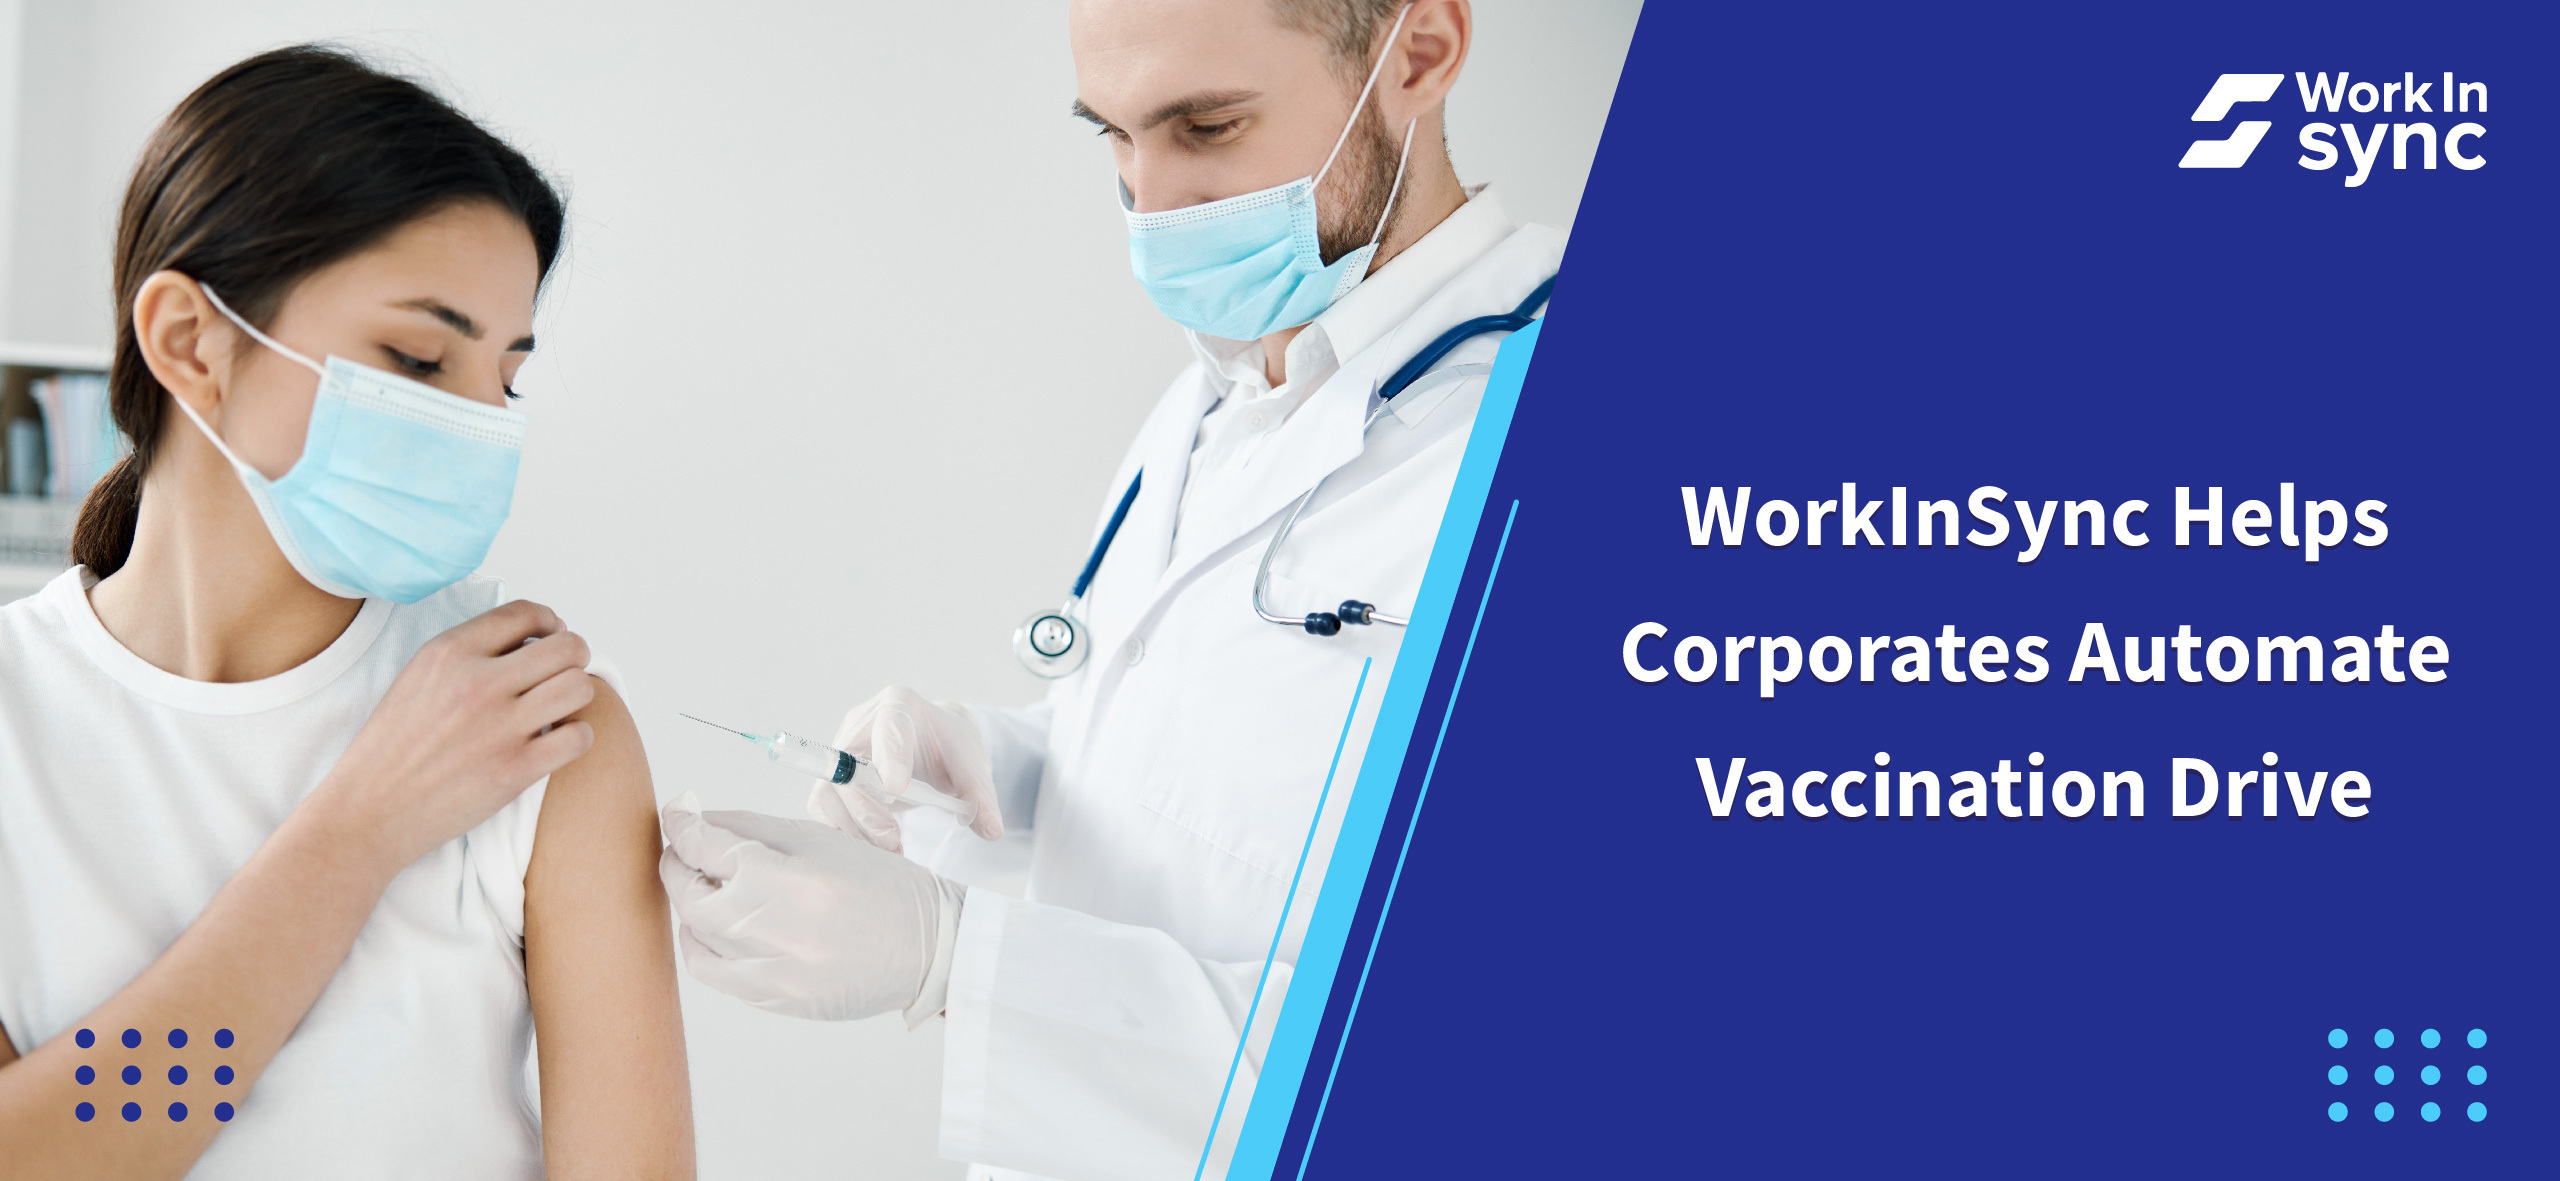 WorkInSync helps Corporates Automate Vaccination Drives